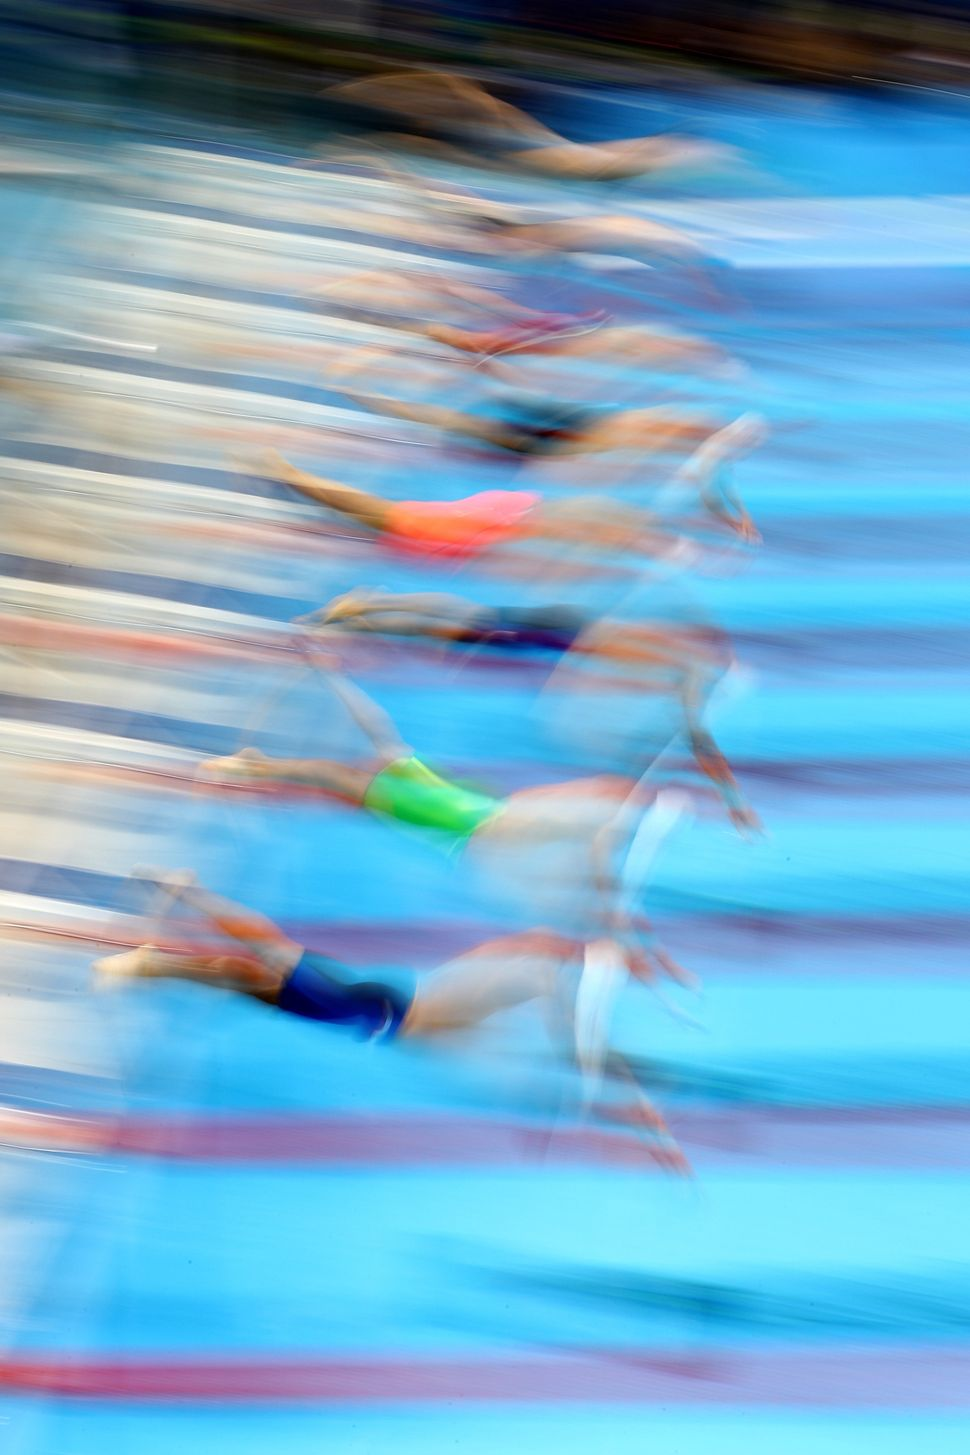 Yang Sun of China competes in heat six of the Men's 400m Freestyle on Day 1 of the Rio 2016 Olympic Games.